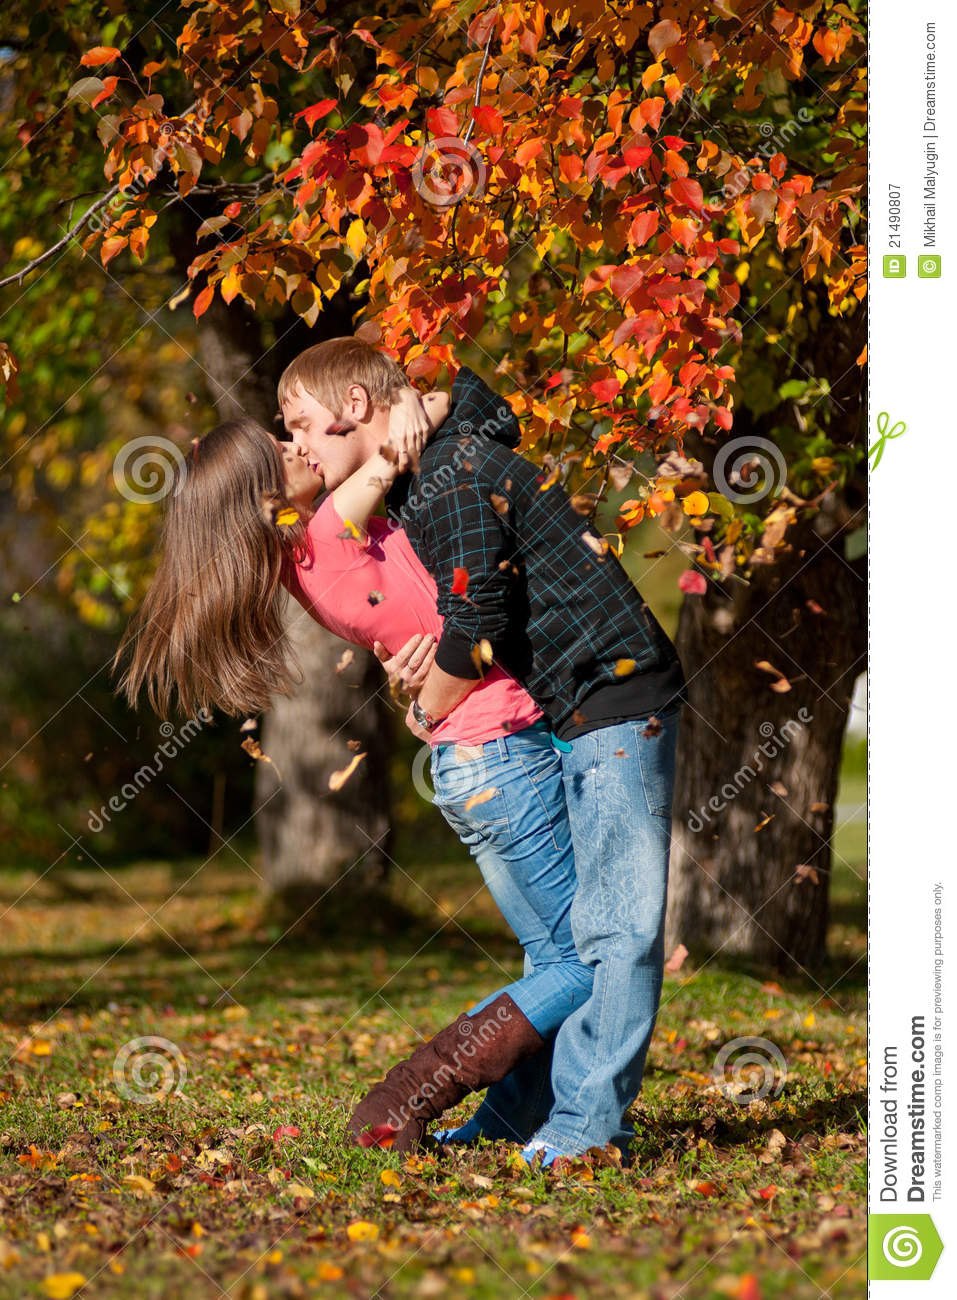 Beautiful Couple Kissing In Autumn Park Royalty Free Stock Photography - Image 21490807-1492